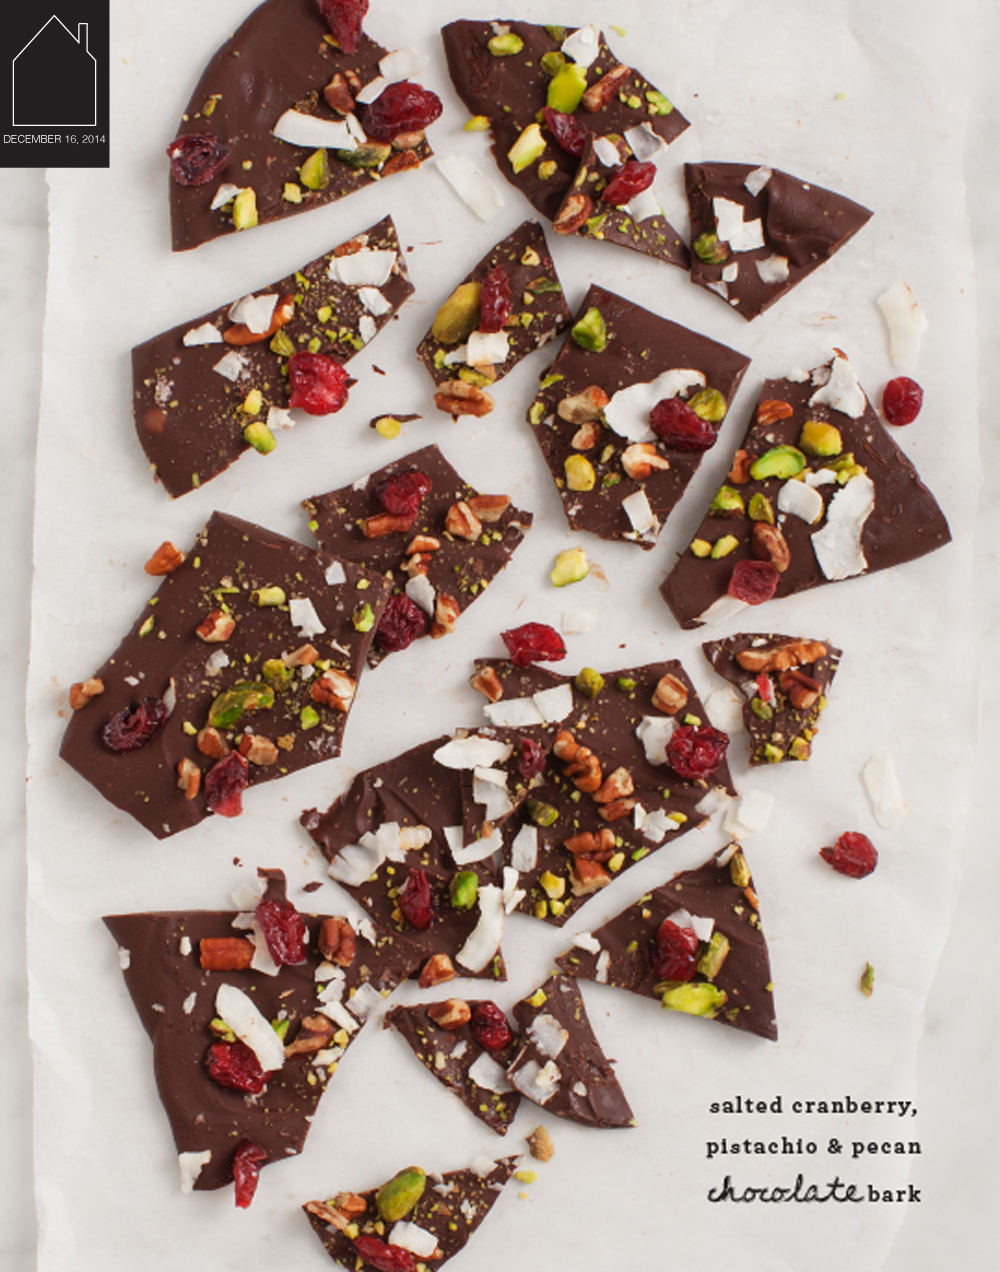 salted cranberry, pistachio & pecan chocolate bark via Love & Lemons